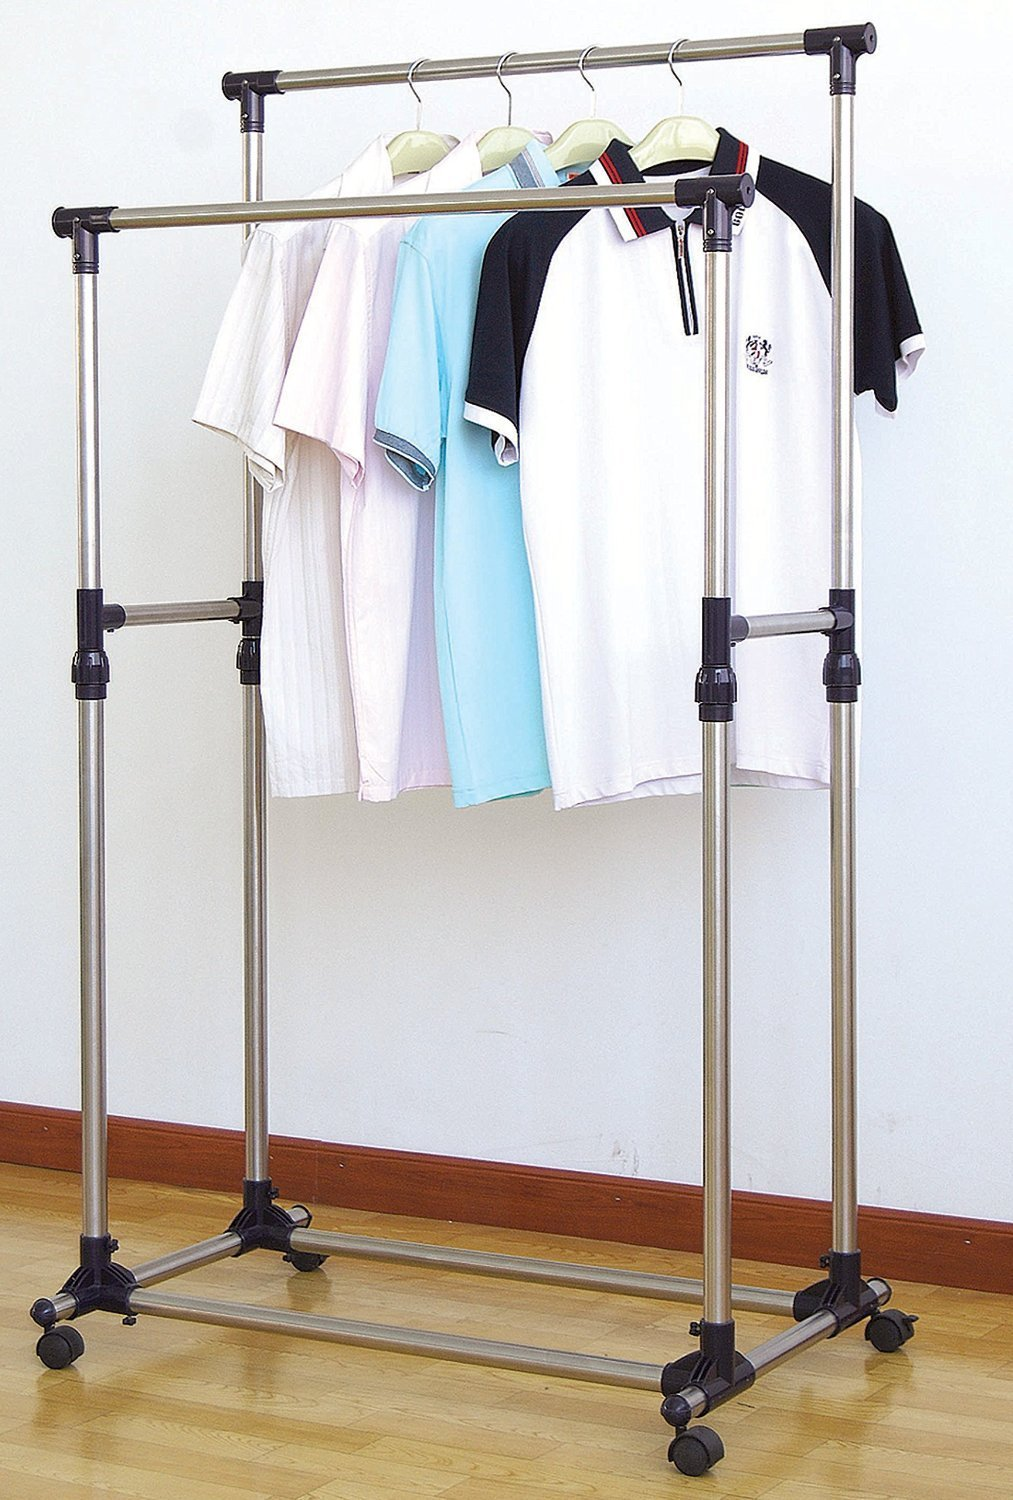 household supplies cleaning high quality garment rack wheels rolling clothes closet rack hanger shelves home organization